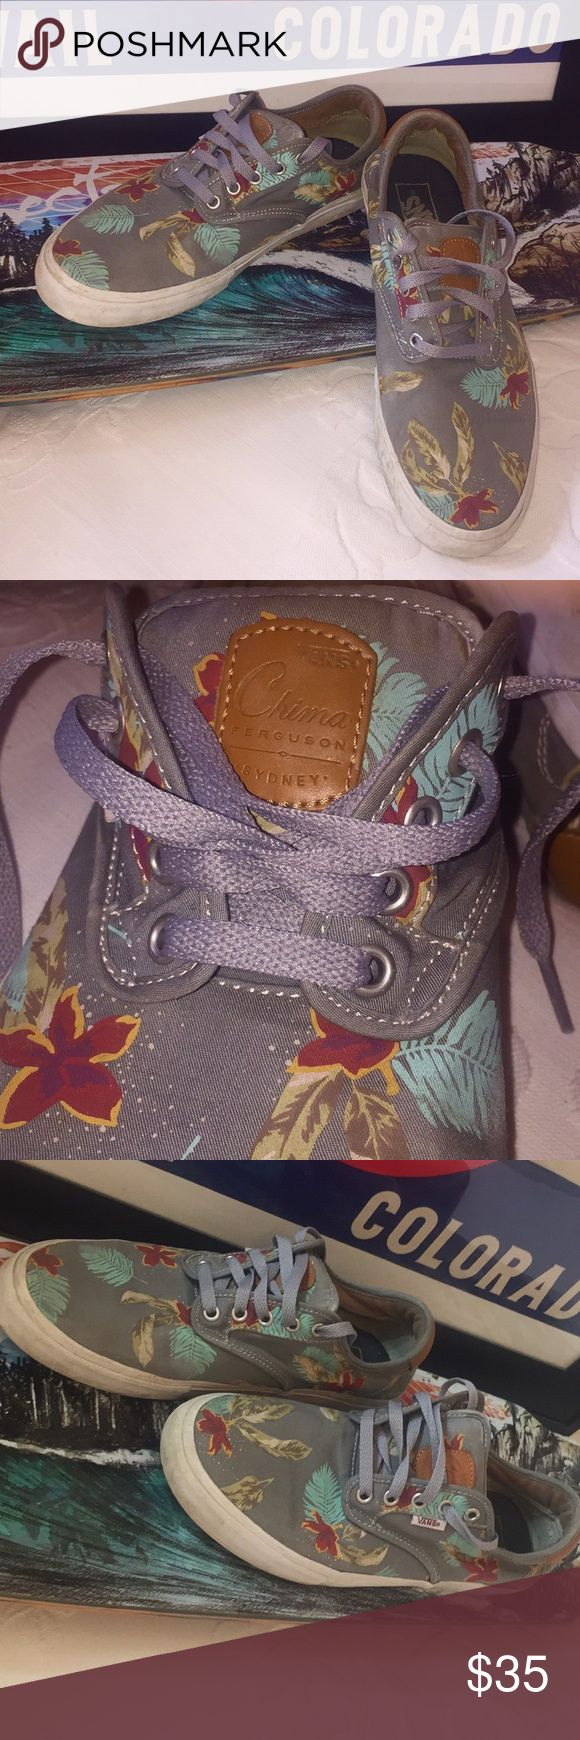 Vans Chima Ferguson Pro Aloha Light Grey Vans Chima Ferguson pro men's skate shoes in Aloha light Grey. Shoes are in good used condition from a smoke free home. Vans Shoes Sneakers